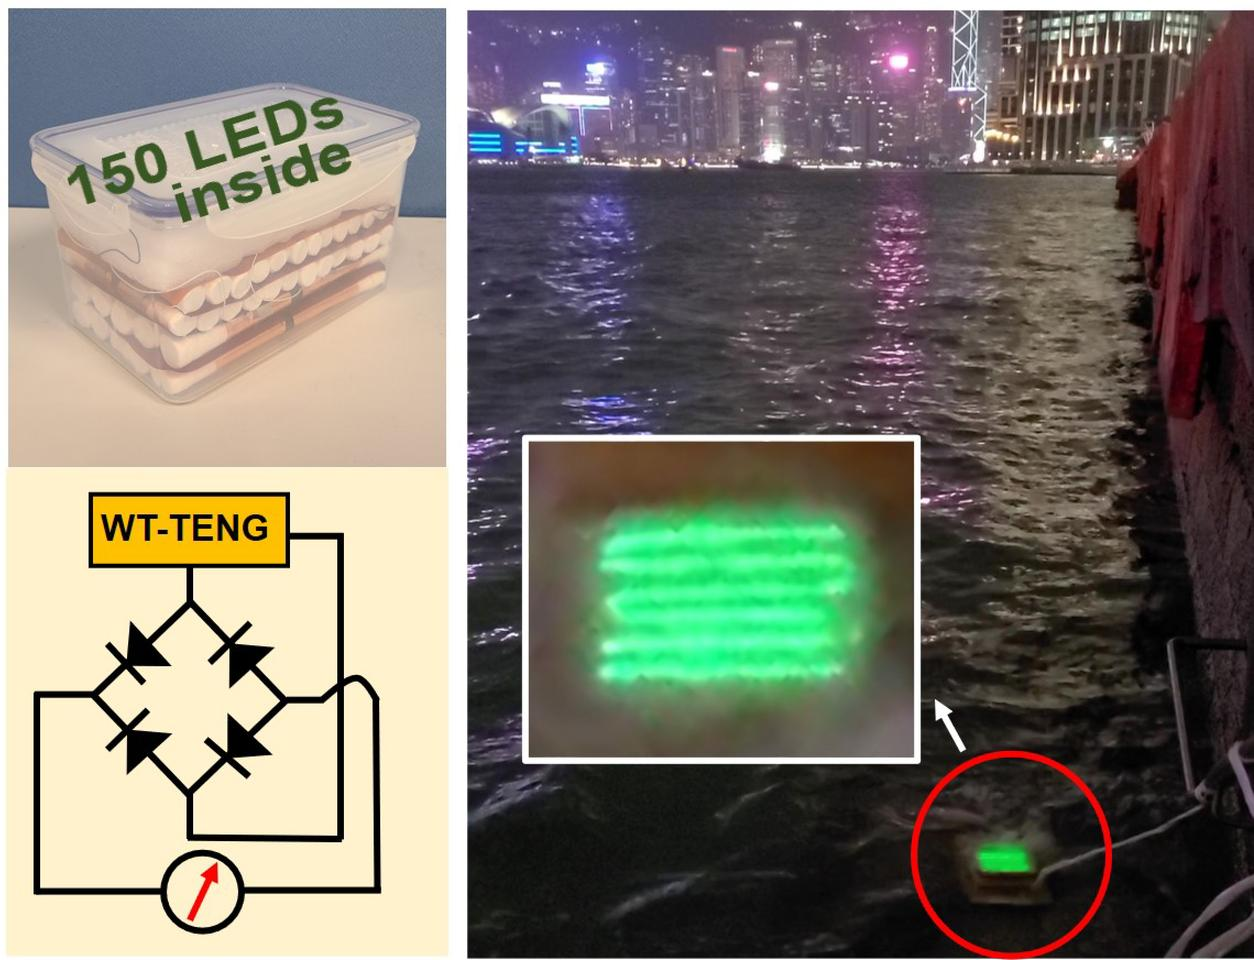 A floating device containing 34 WT-TENGs was able to generate electricity from the motion of waves in the sea